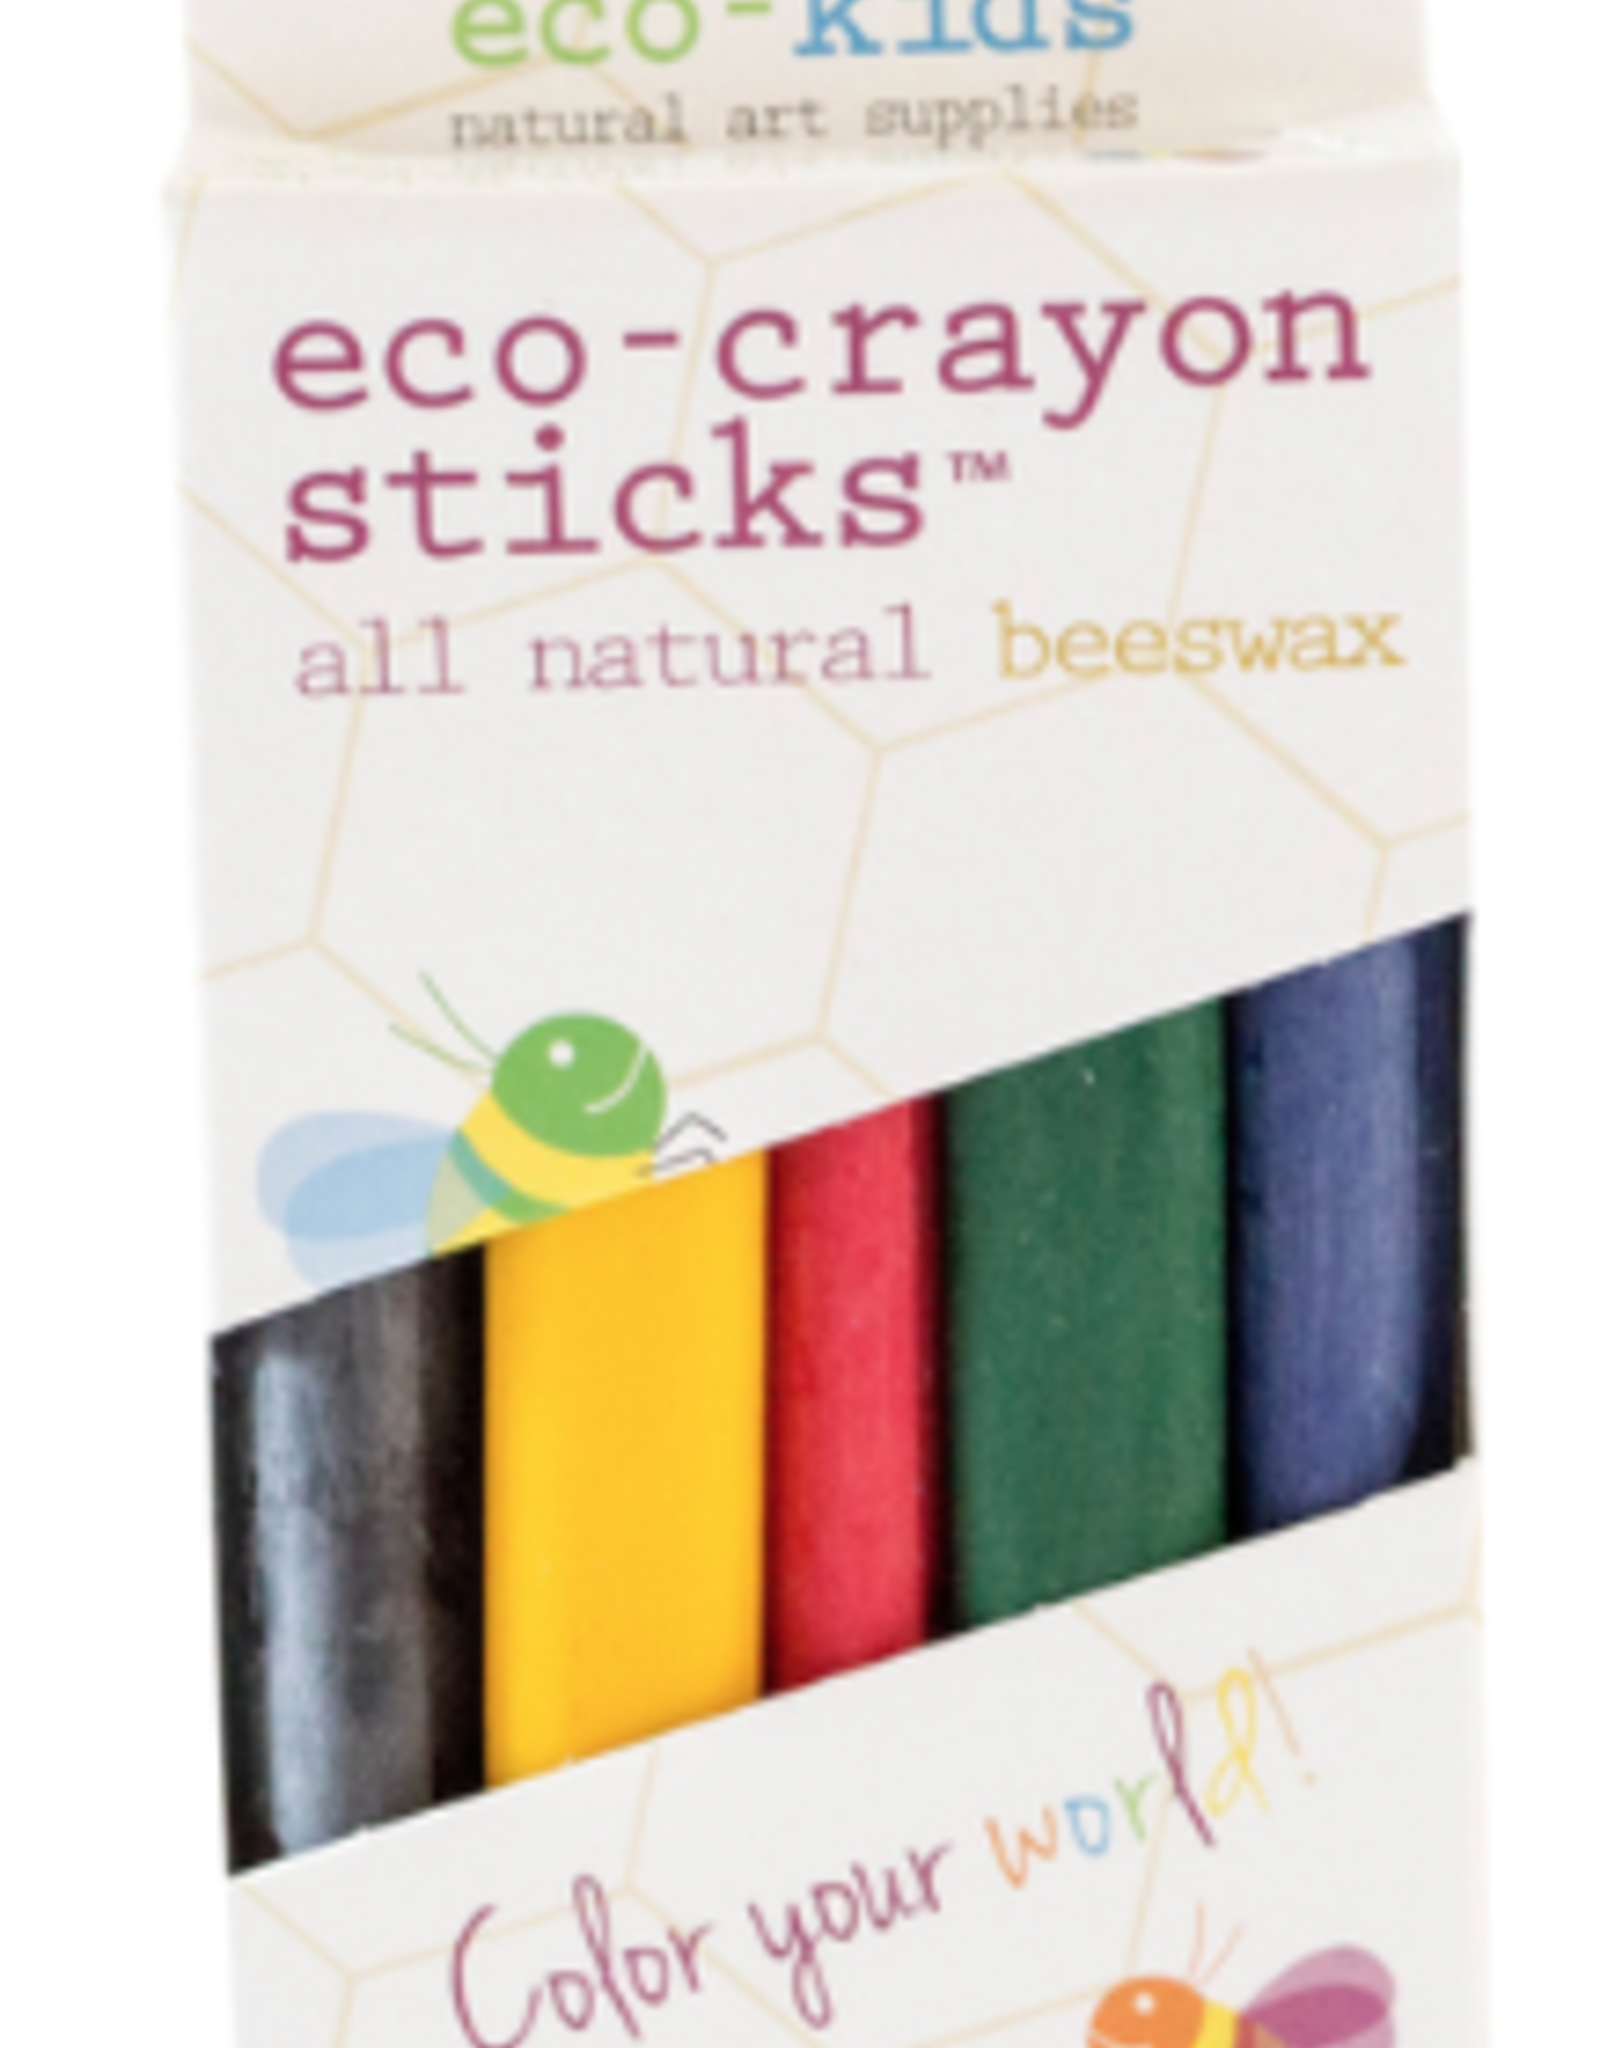 Eco-Crayon Sticks - 5 pack